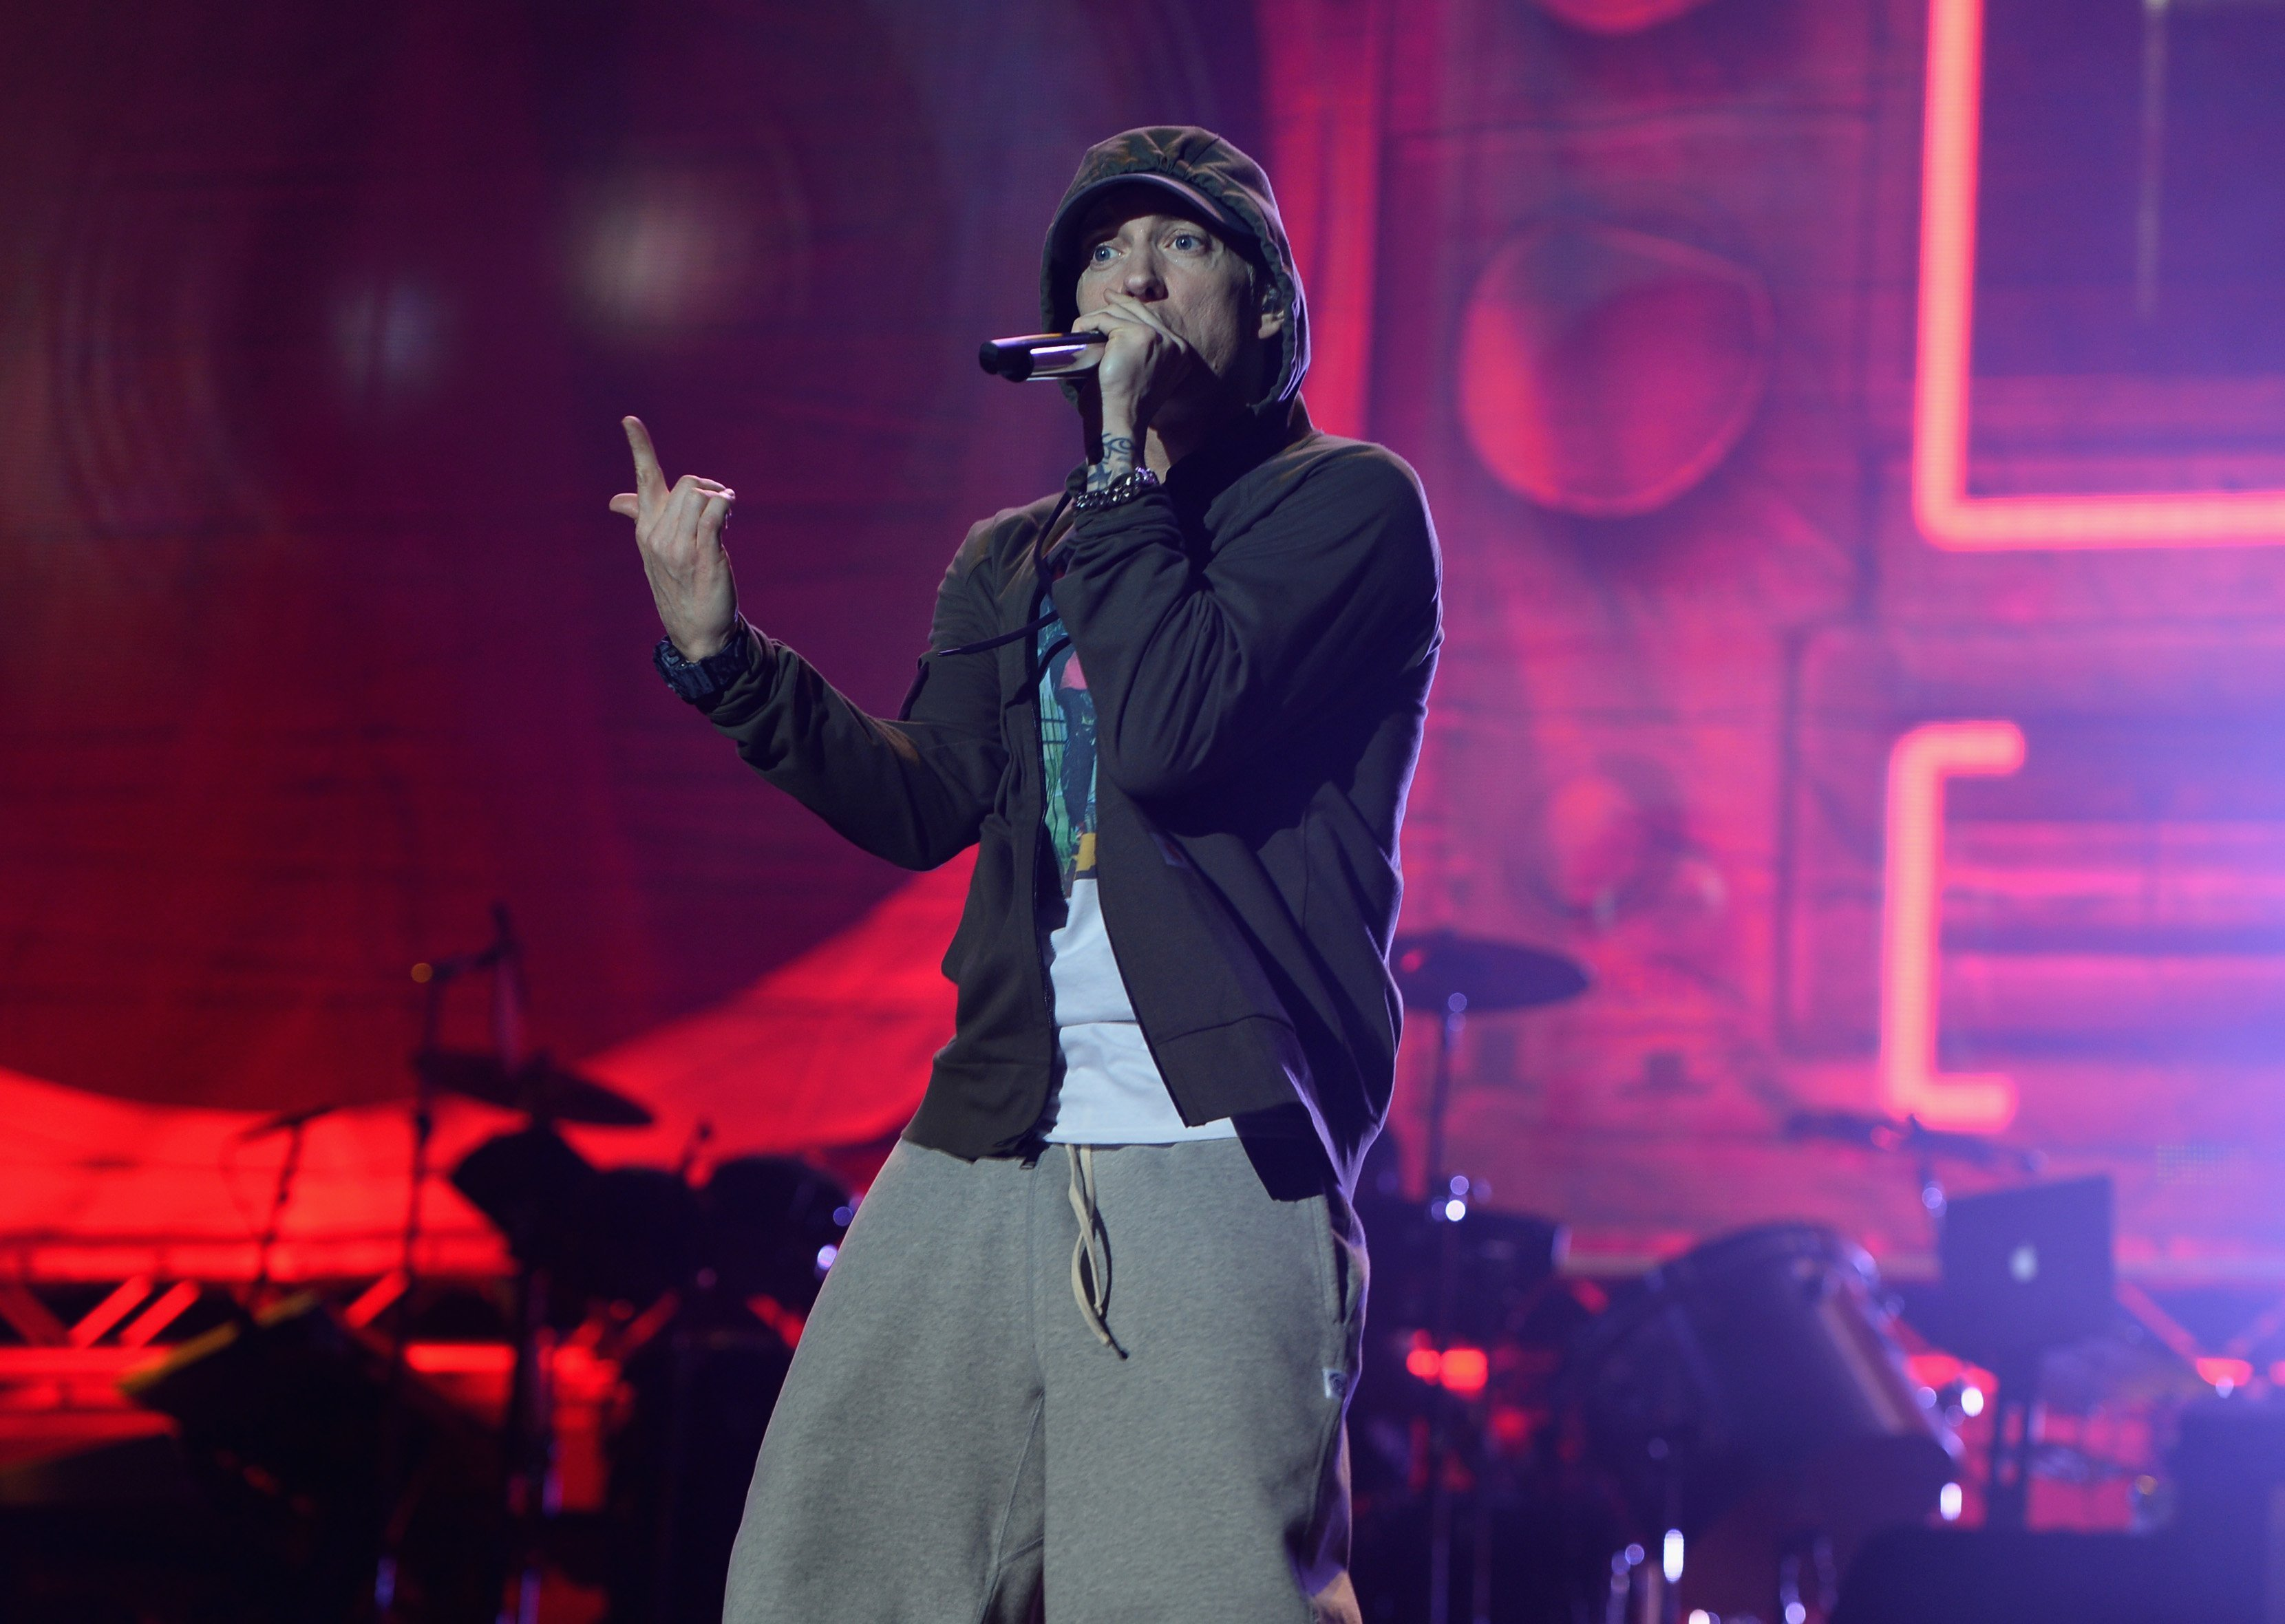 'Gunshot Sound Effect' Causes Panic at Eminem Gig